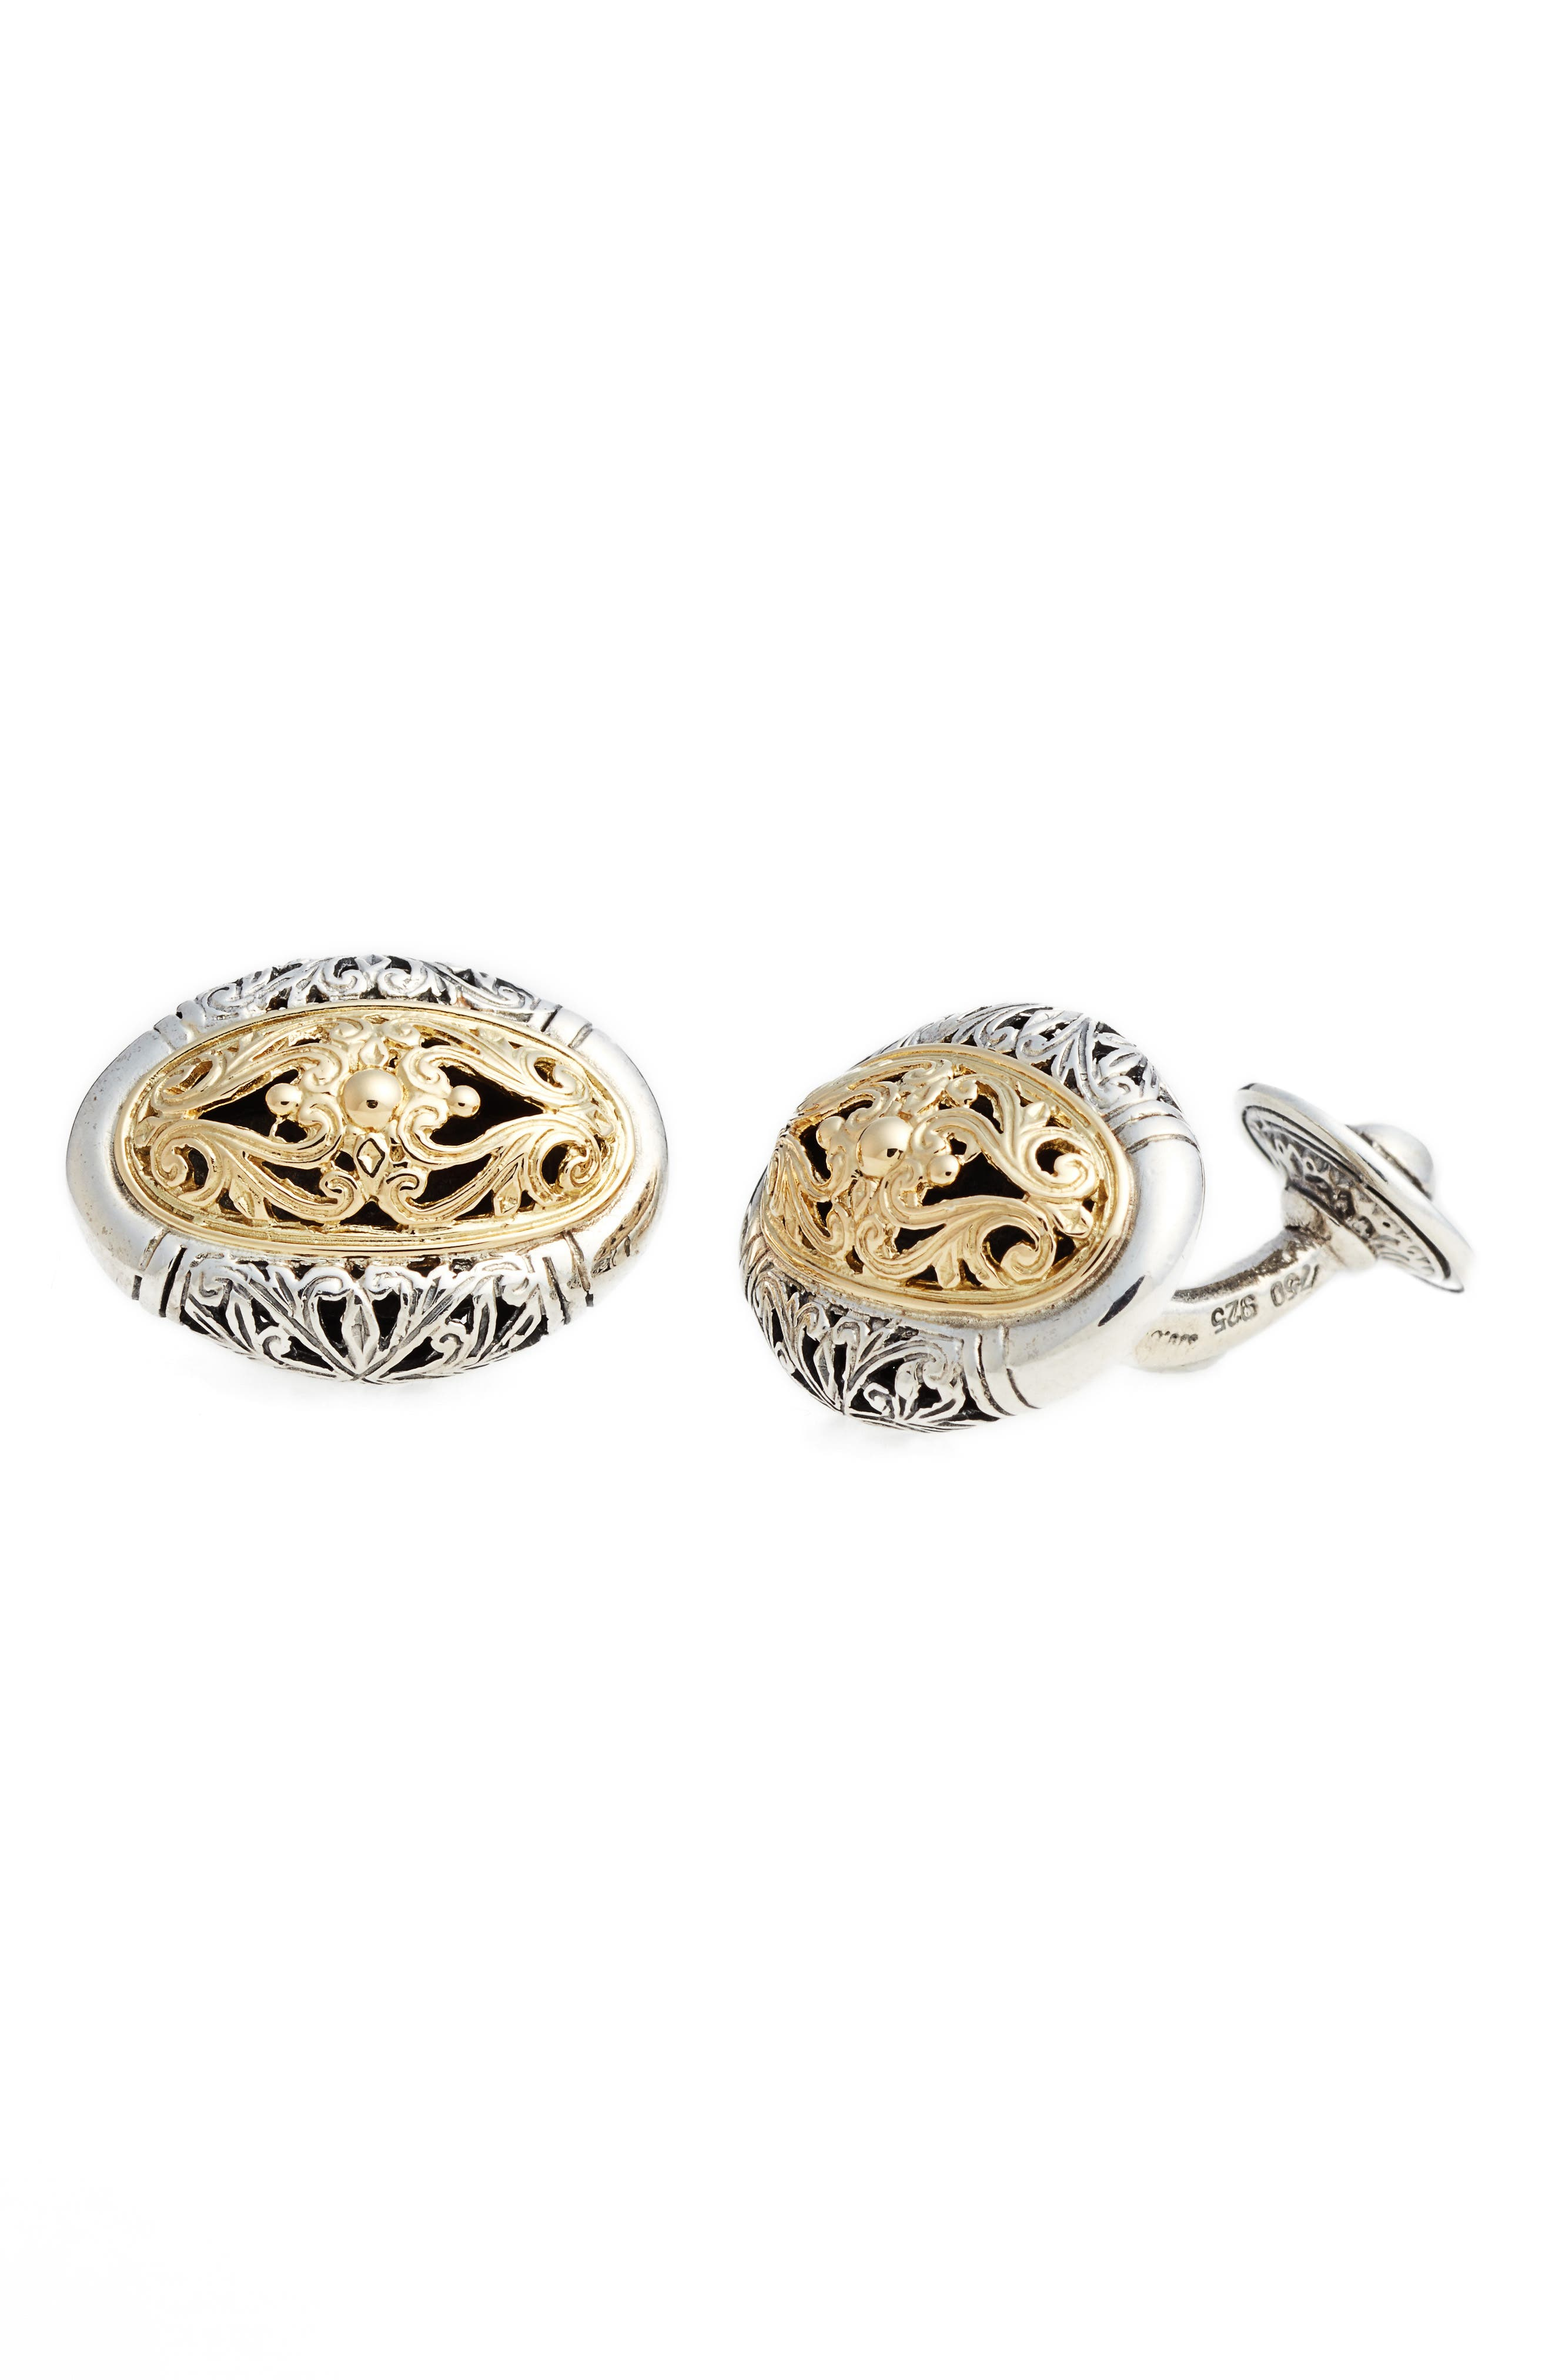 Classics Oval Cuff Links,                         Main,                         color, SILVER/ GOLD